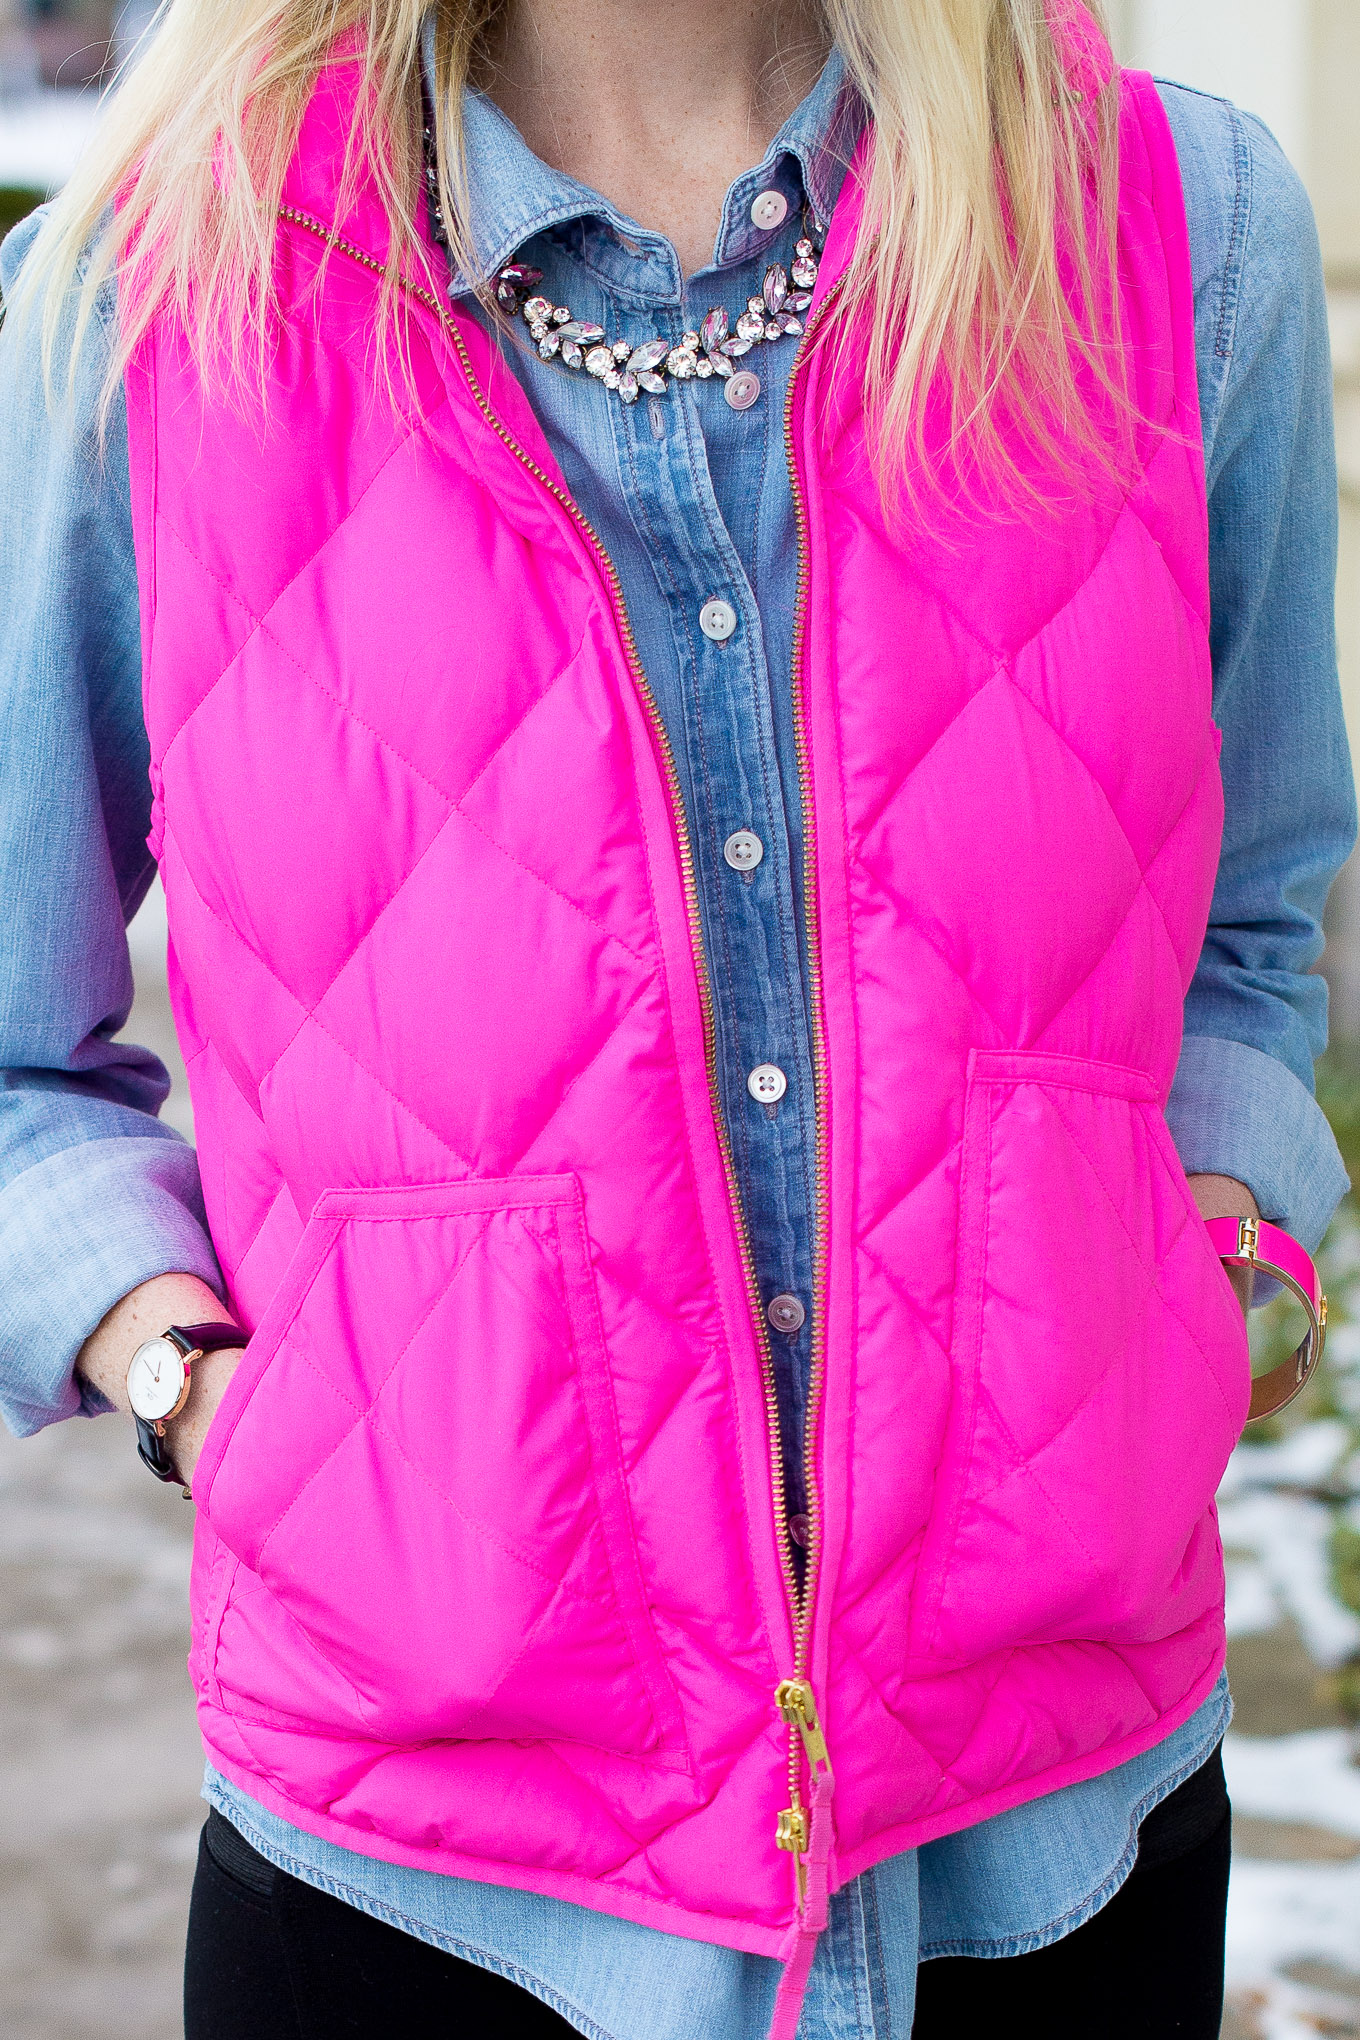 J.Crew Pink Excursion Vest-32